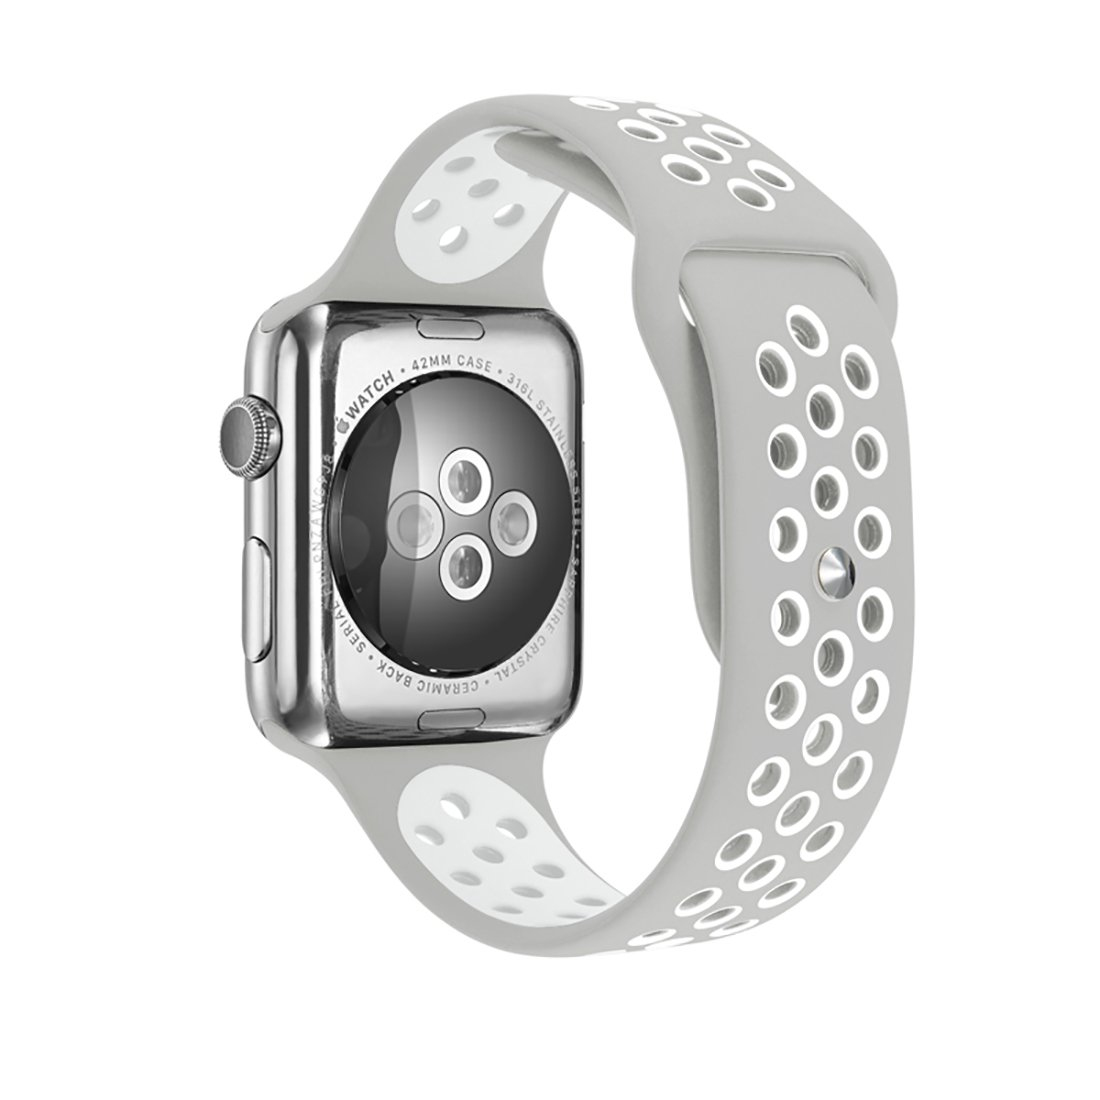 Amazon.com: PLUSEYE for Apple Watch Band Silicon Apple Watch ...